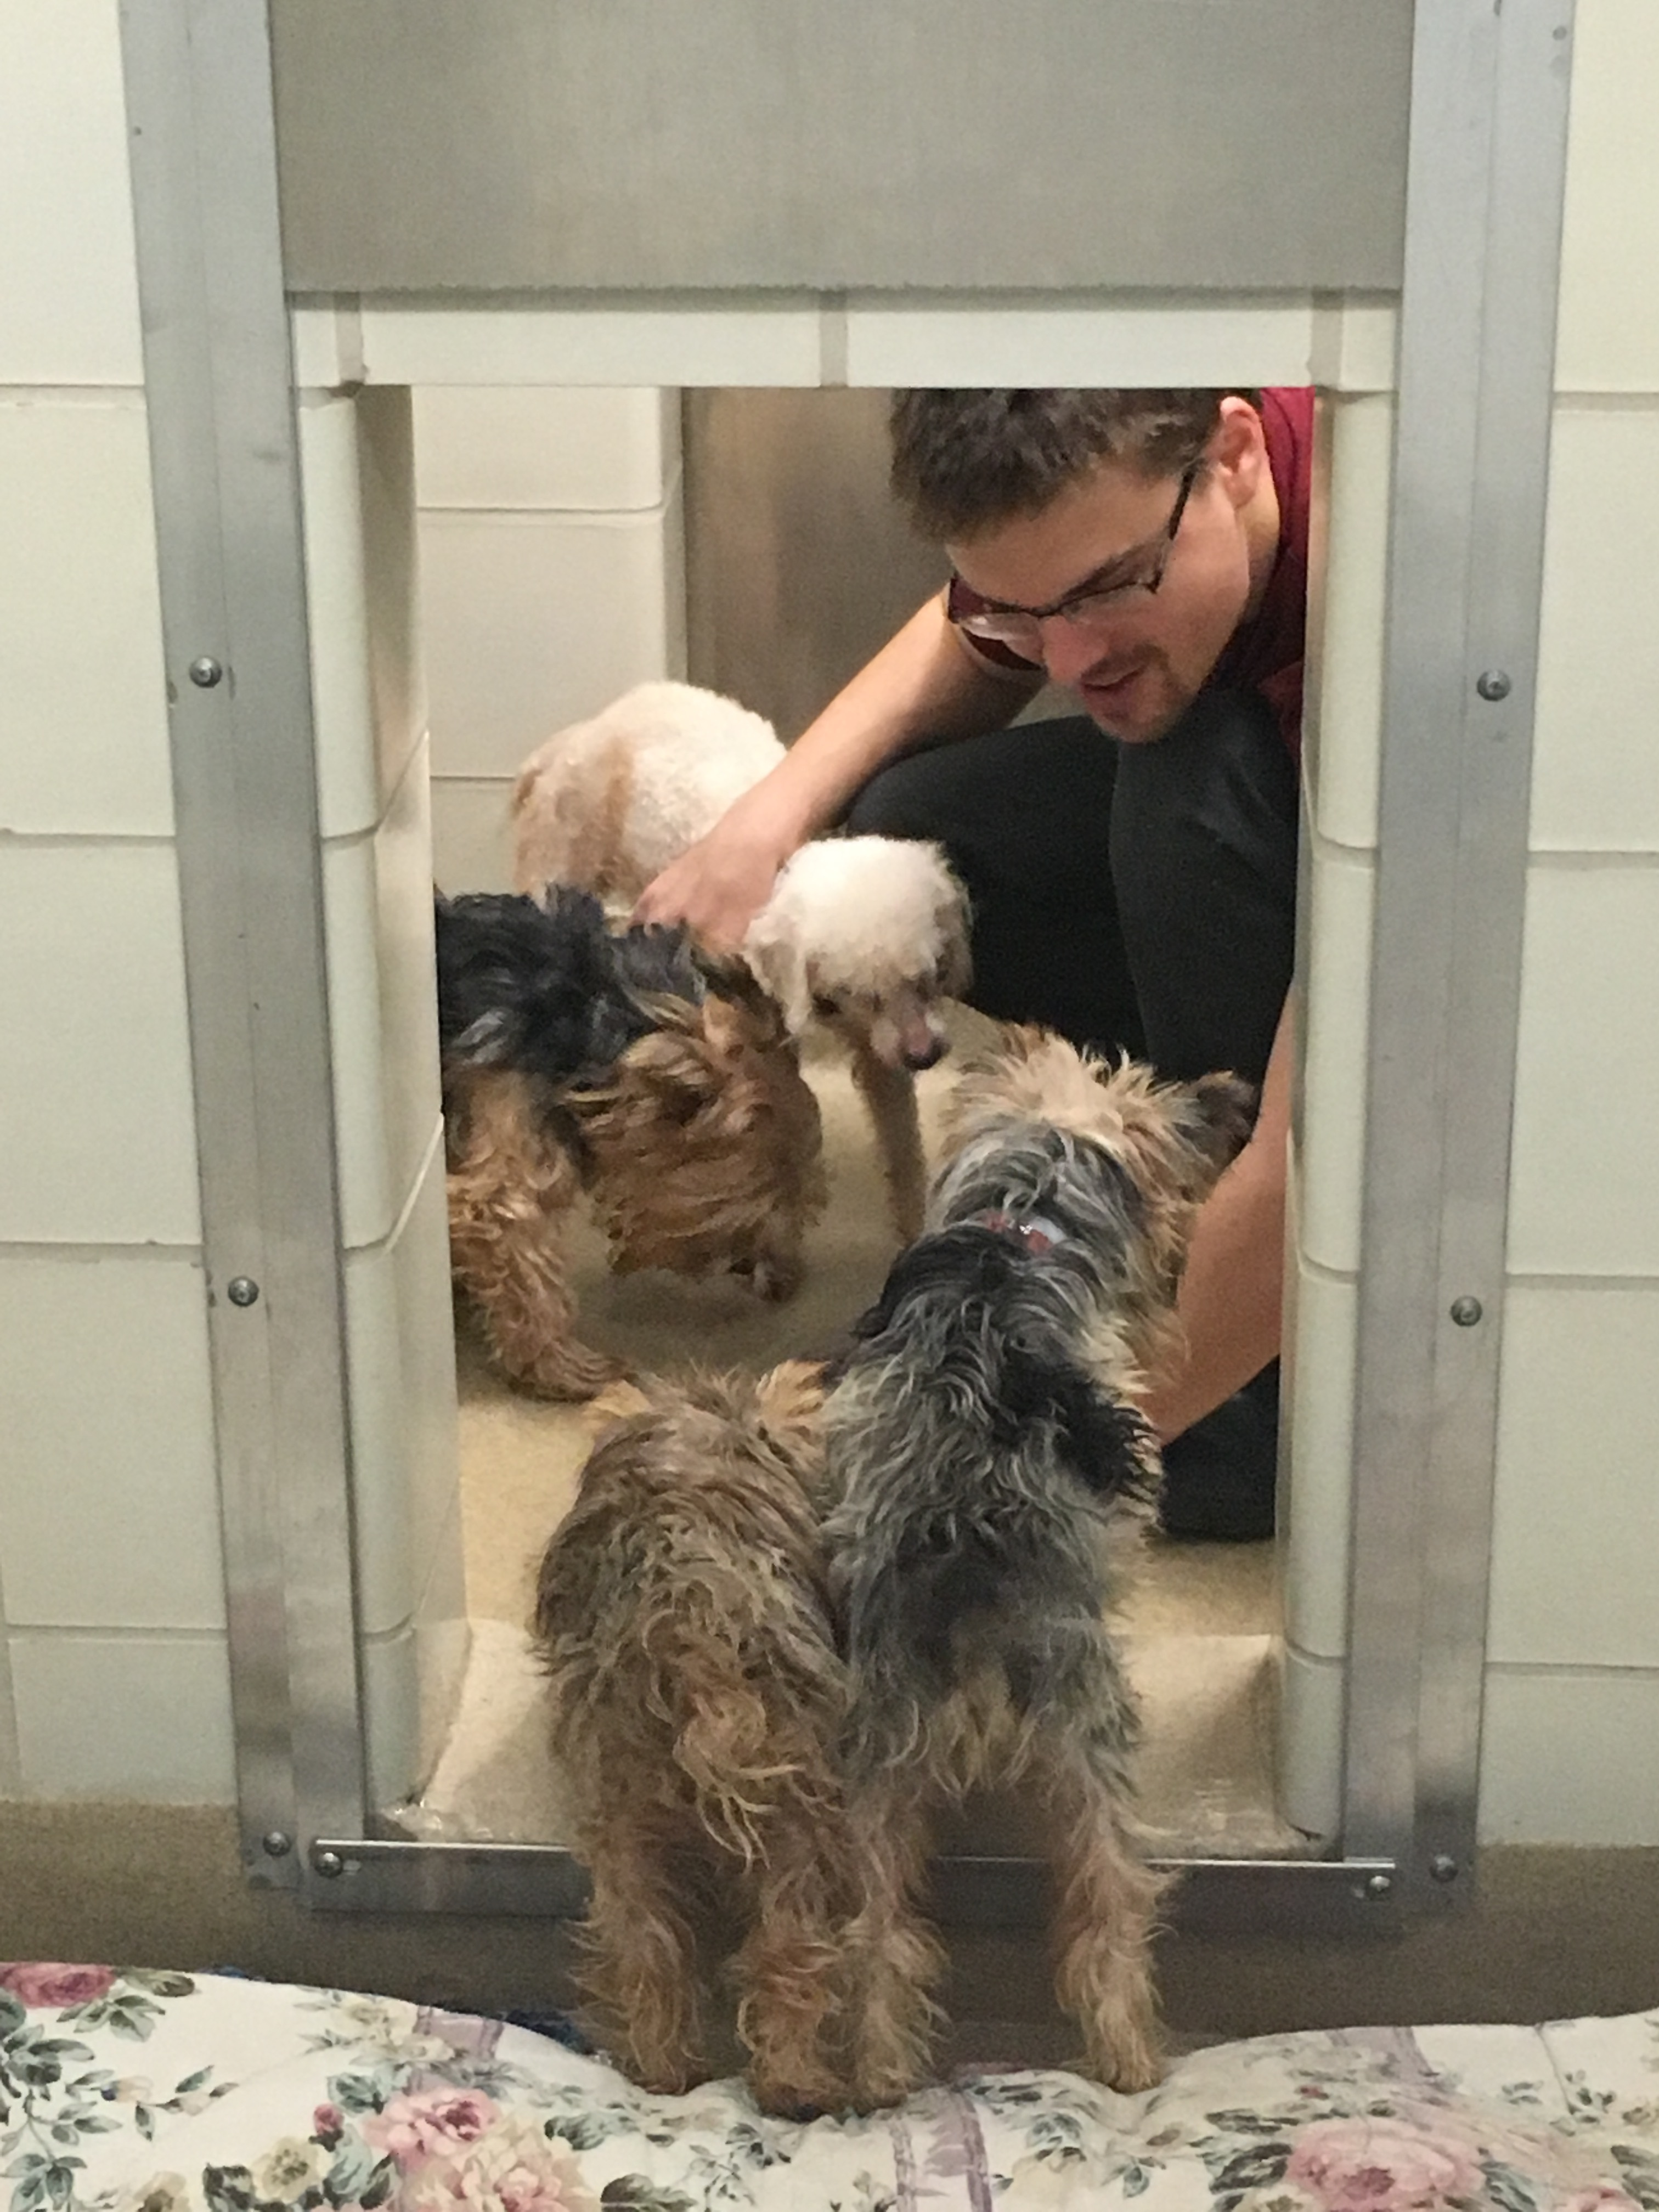 Dogs seized from Rockville home prepared for adoption (Video)